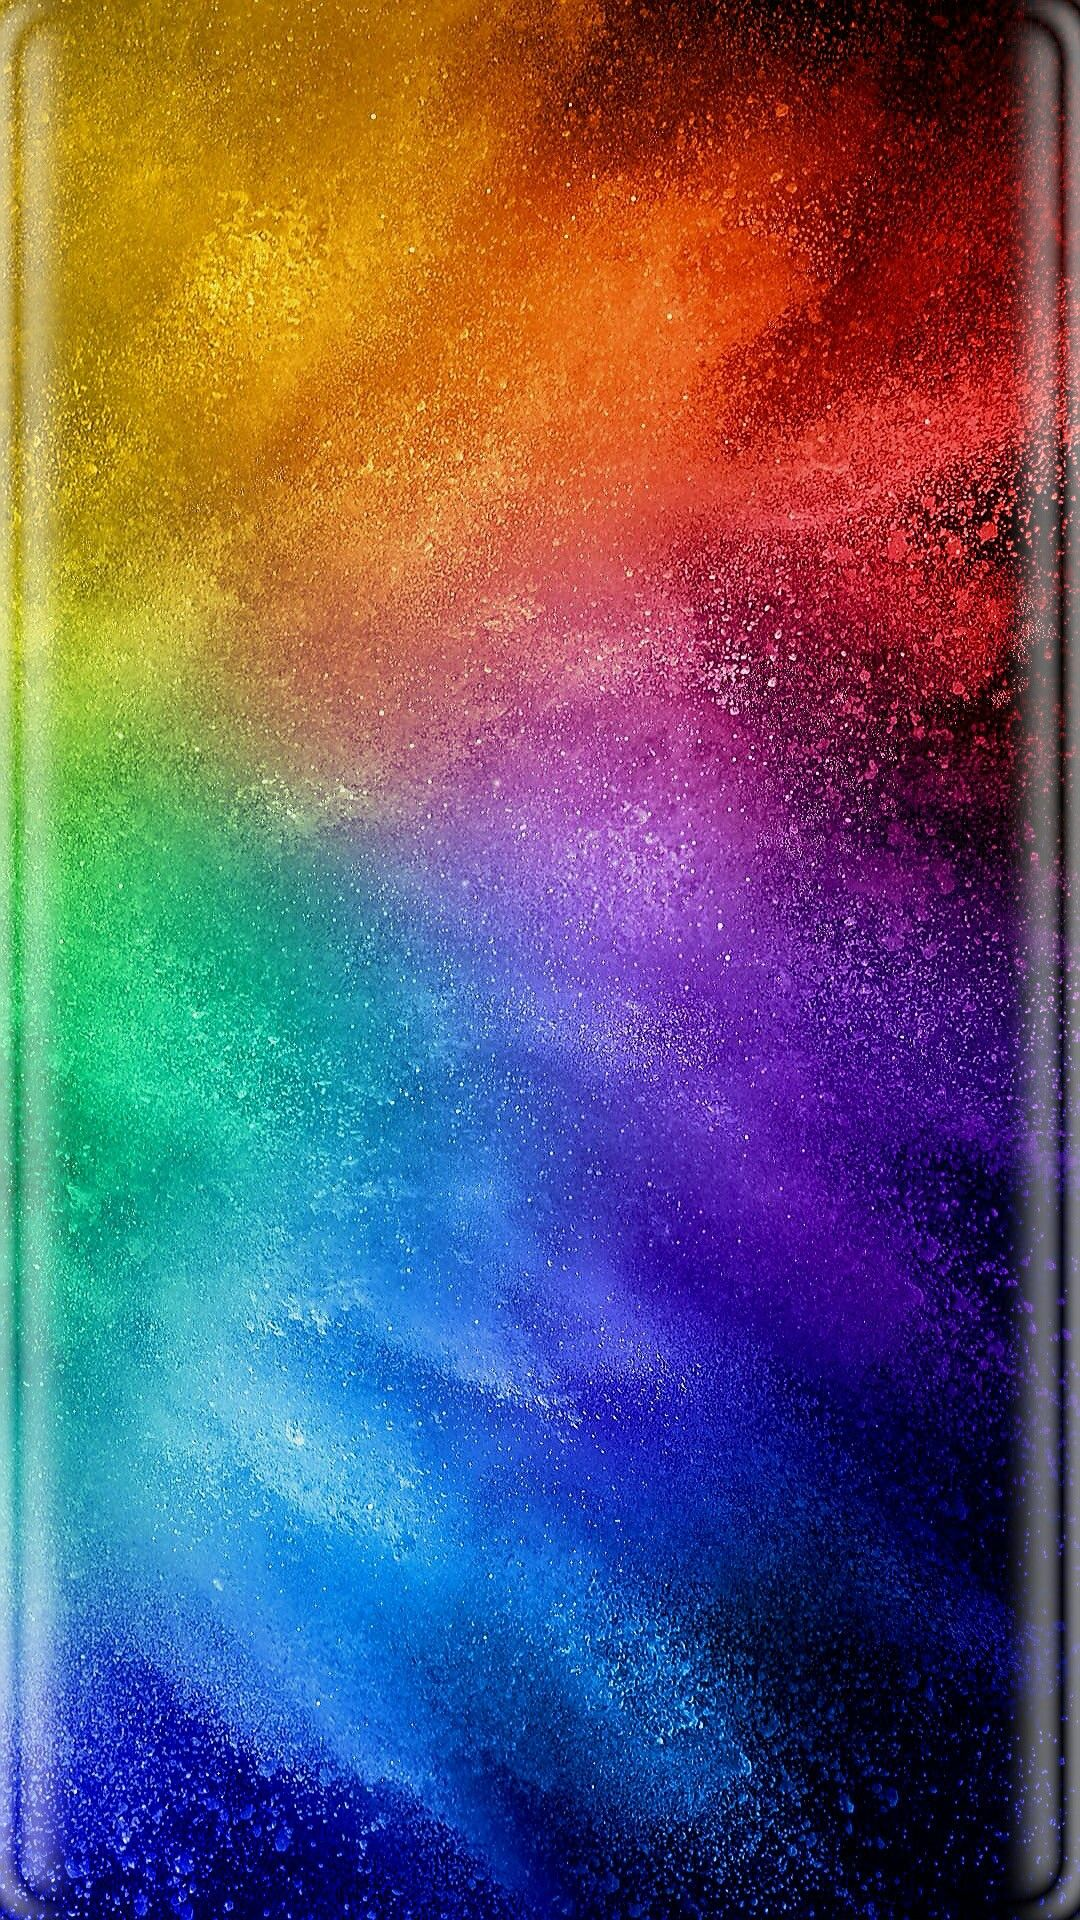 Rainbow bursts wallpaper colorful and rainbow - Colorful galaxy wallpaper ...